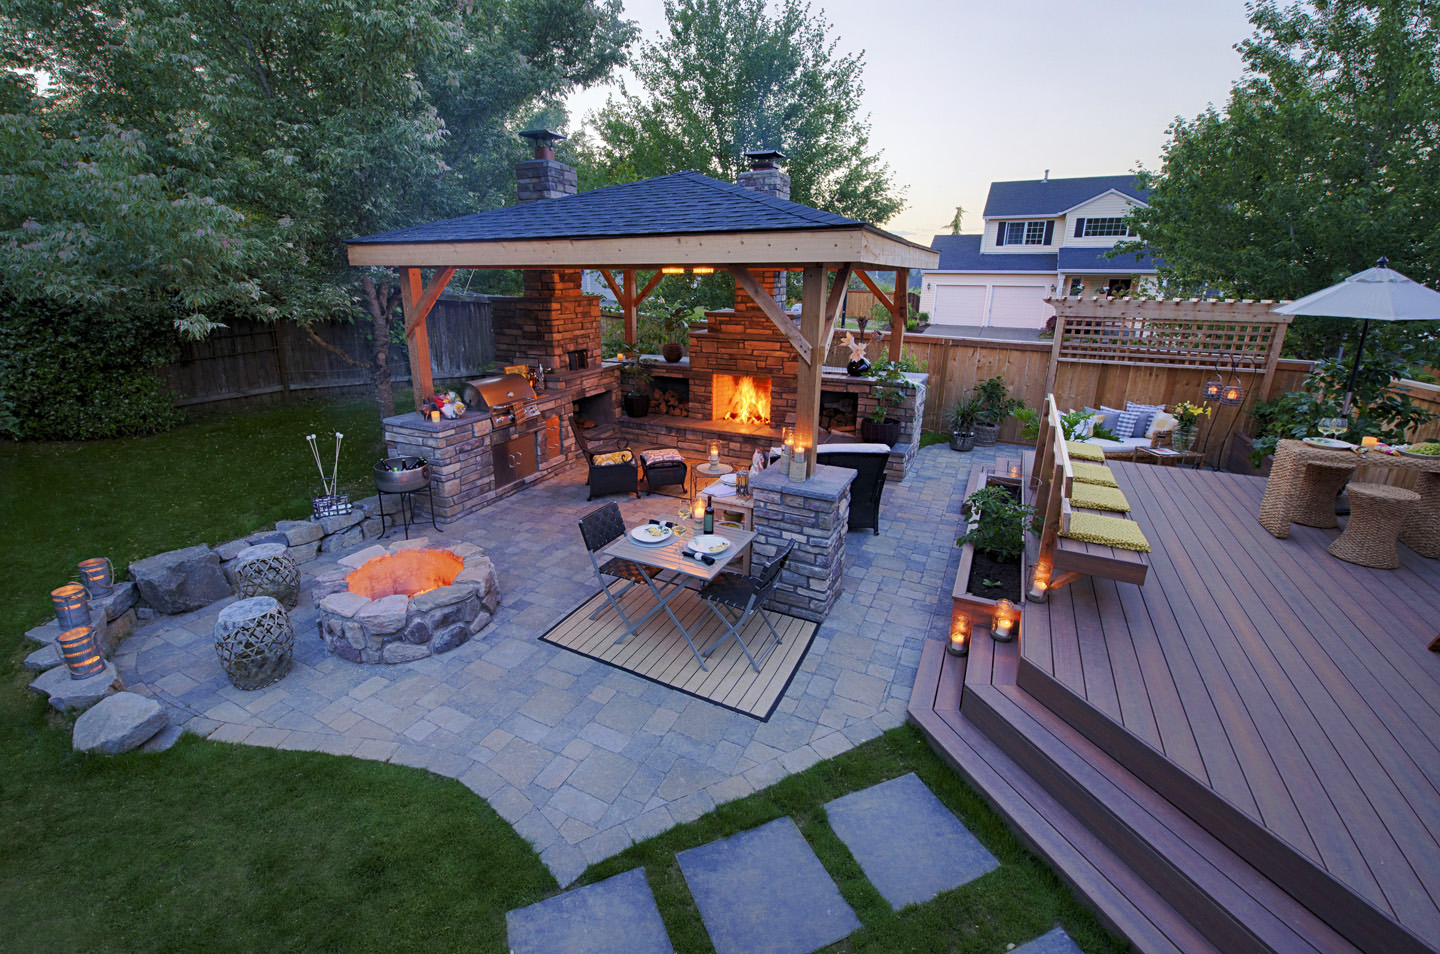 Backyard Deck Ideas - Paradise Restored Landscaping on Deck And Patio Ideas For Small Backyards id=19376